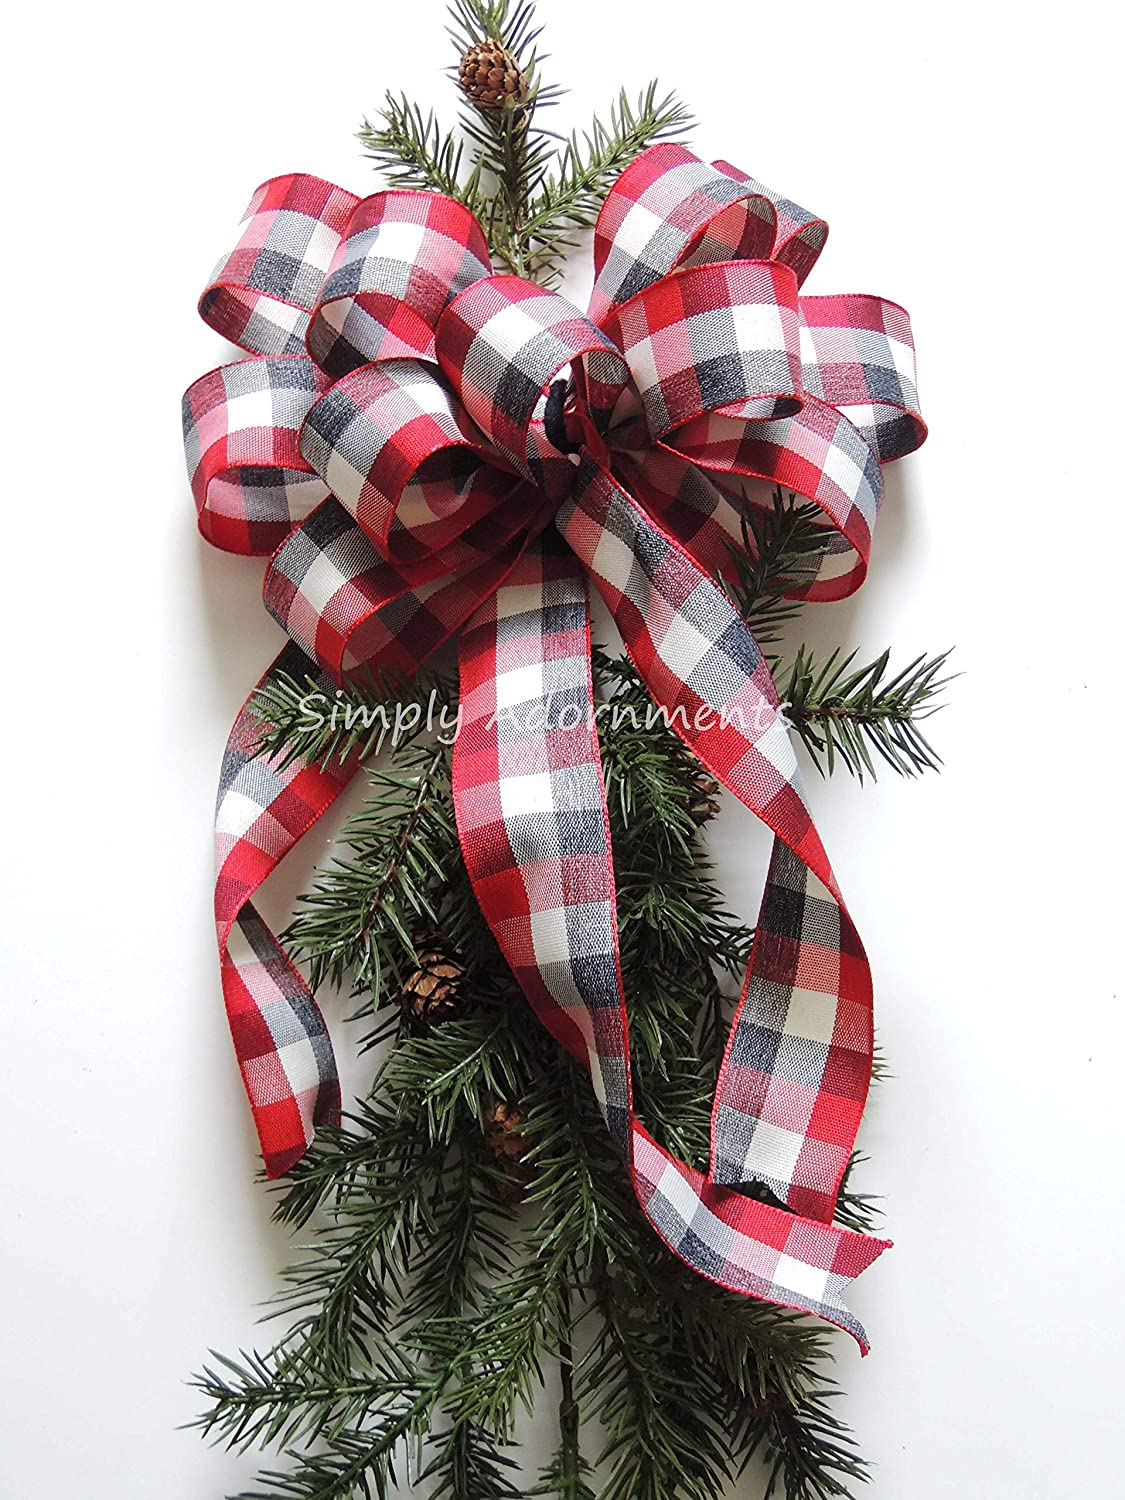 Buffalo Check Christmas Wreath.Black Red Off White Cabin Plaid Bow Only Red Black Cream Check Christmas Wreath Bows Black Red Buffalo Check Bow Farmhouse Buffalo Plaid Christmas